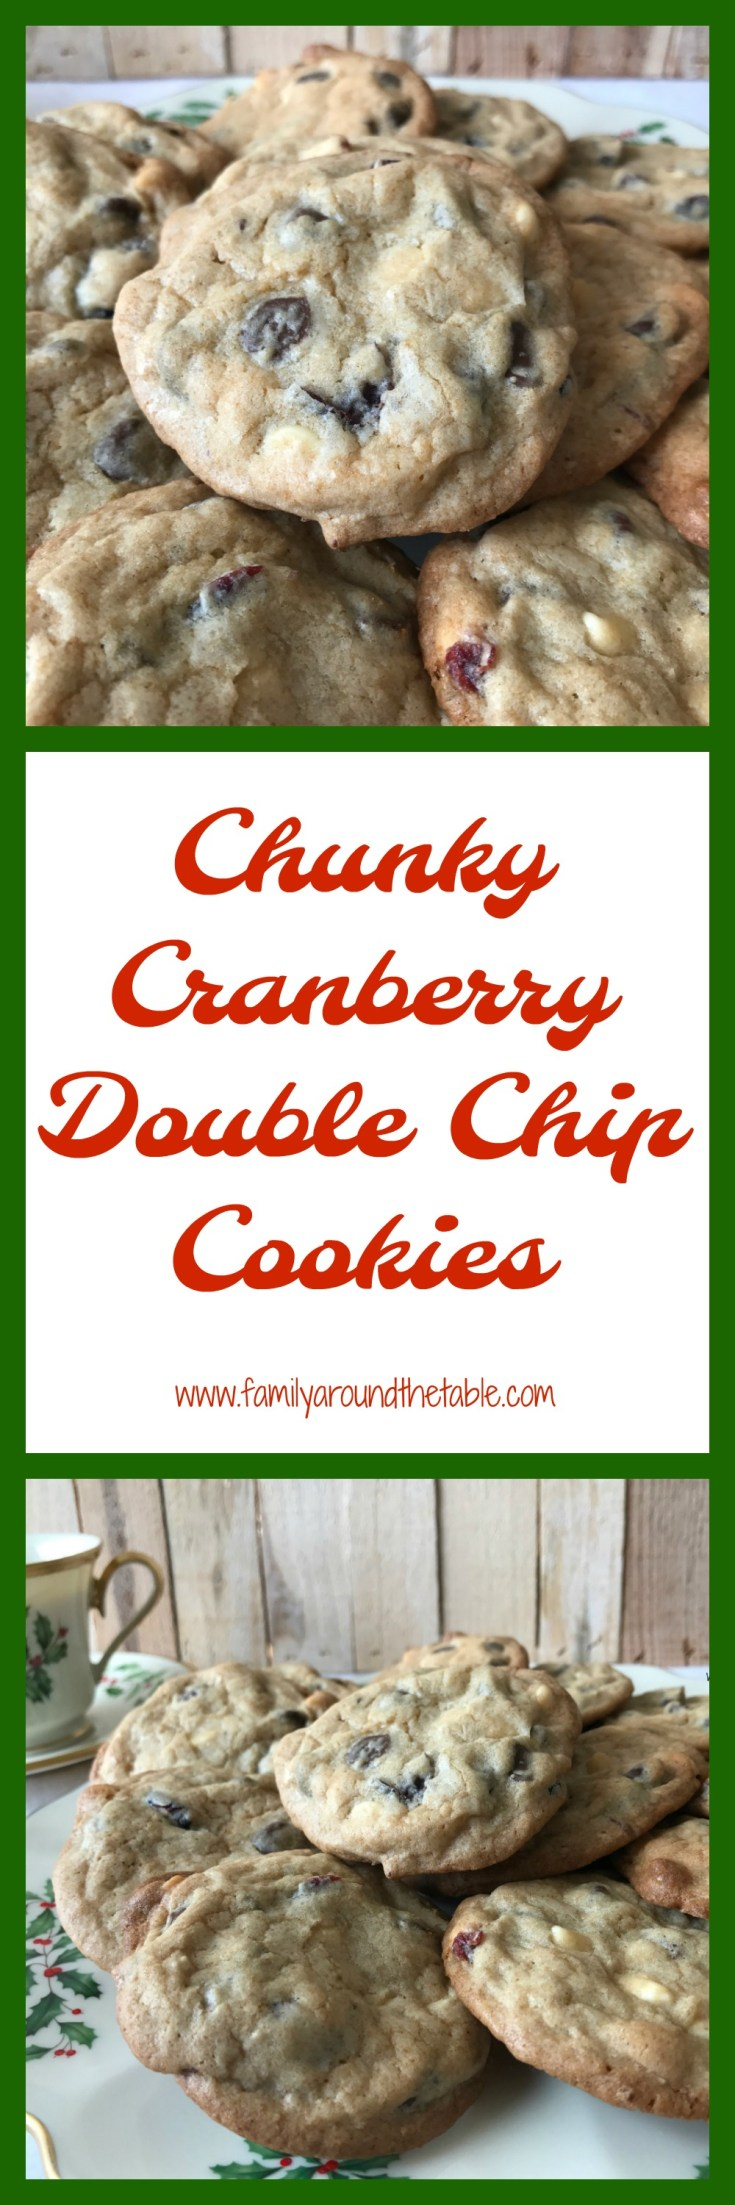 Chunky cranberry double chip cookies are delicious for a holiday dessert table.